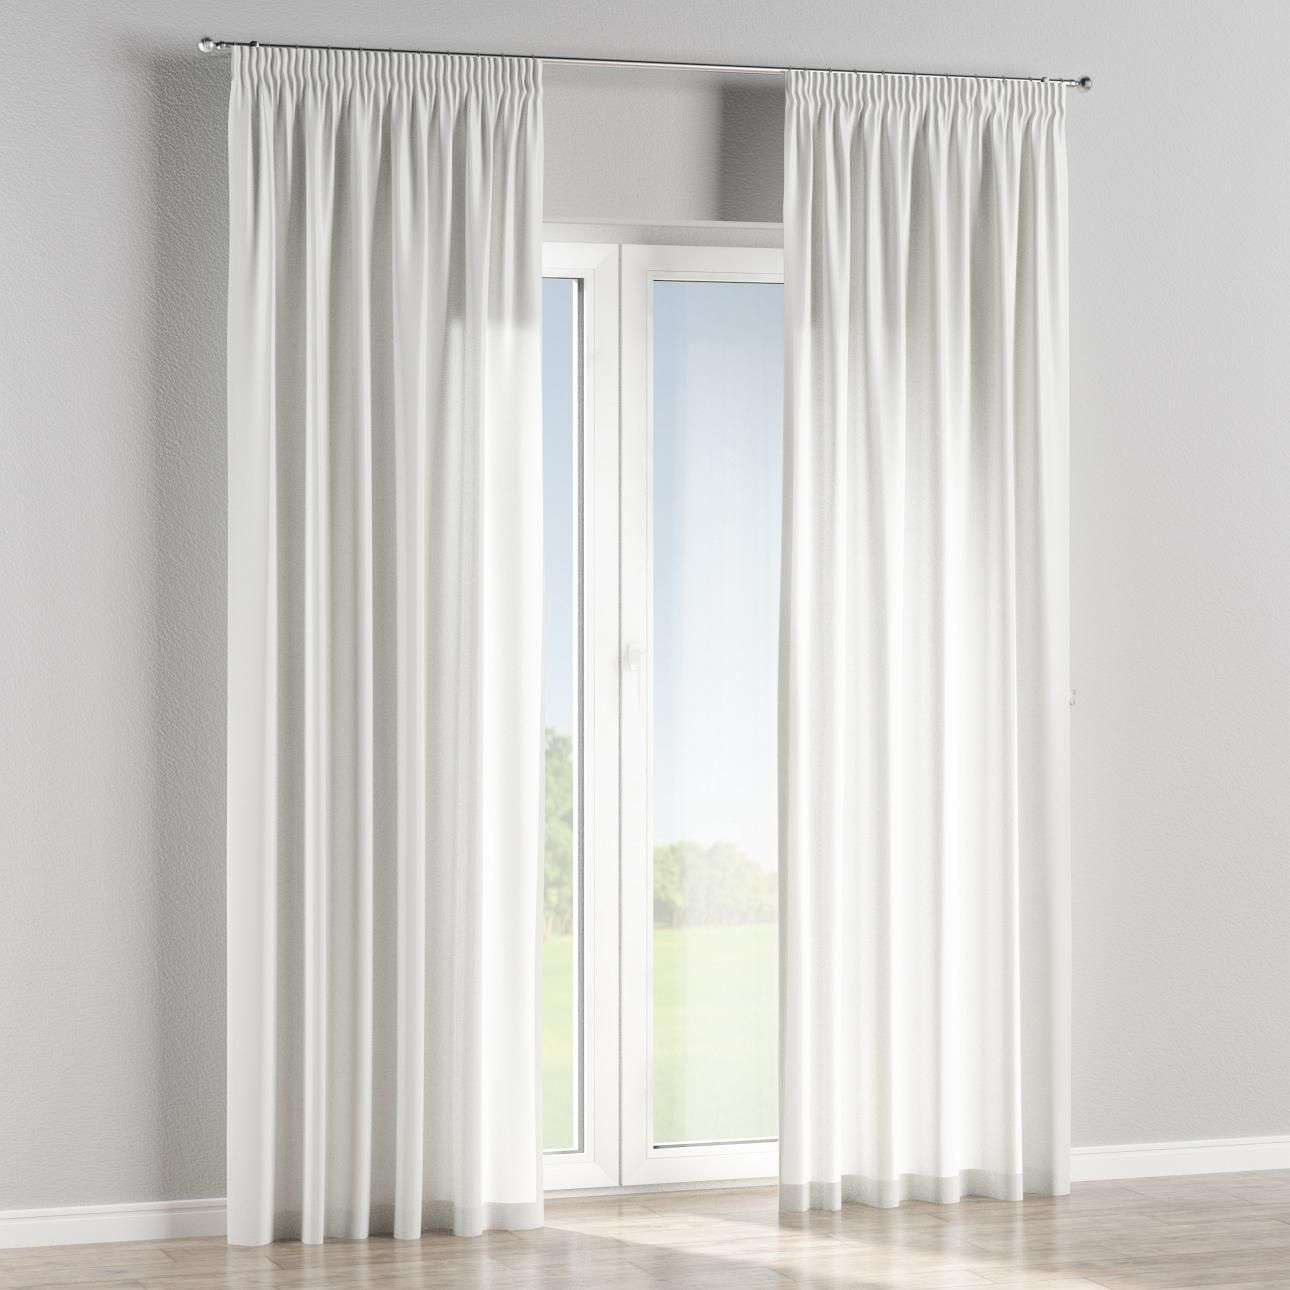 Pencil pleat curtains in collection SALE, fabric: 137-56